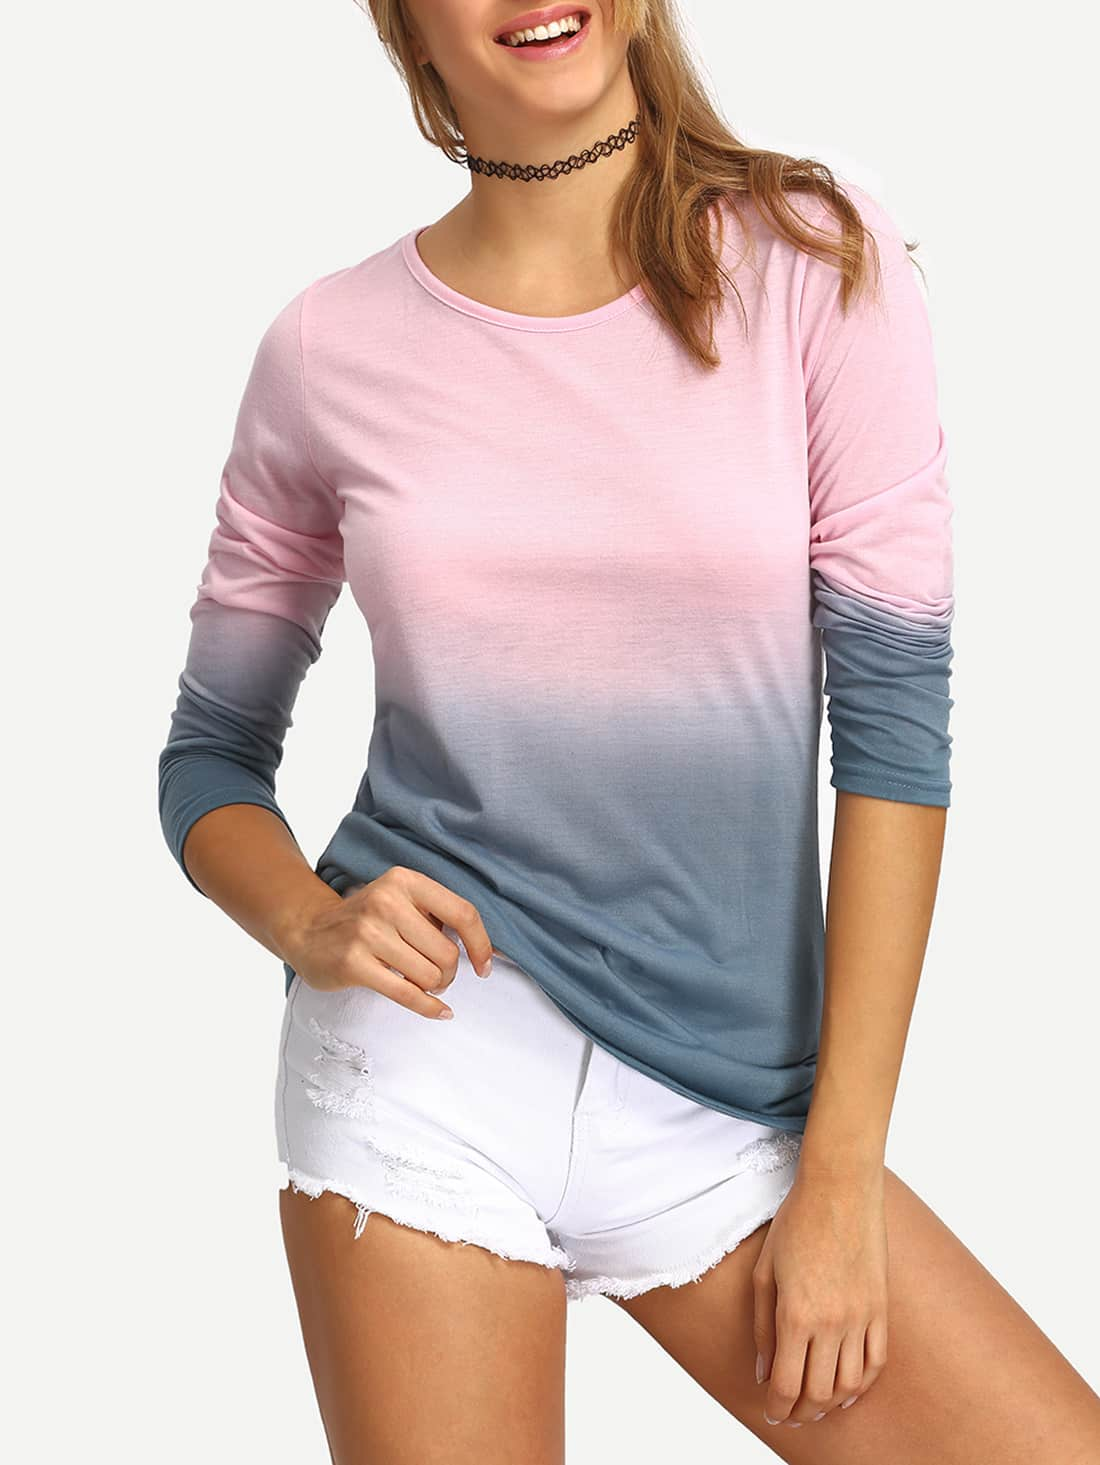 Ombre Long Sleeve T-shirtOmbre Long Sleeve T-shirt<br><br>color: Ombre<br>size: L,M,S,XL